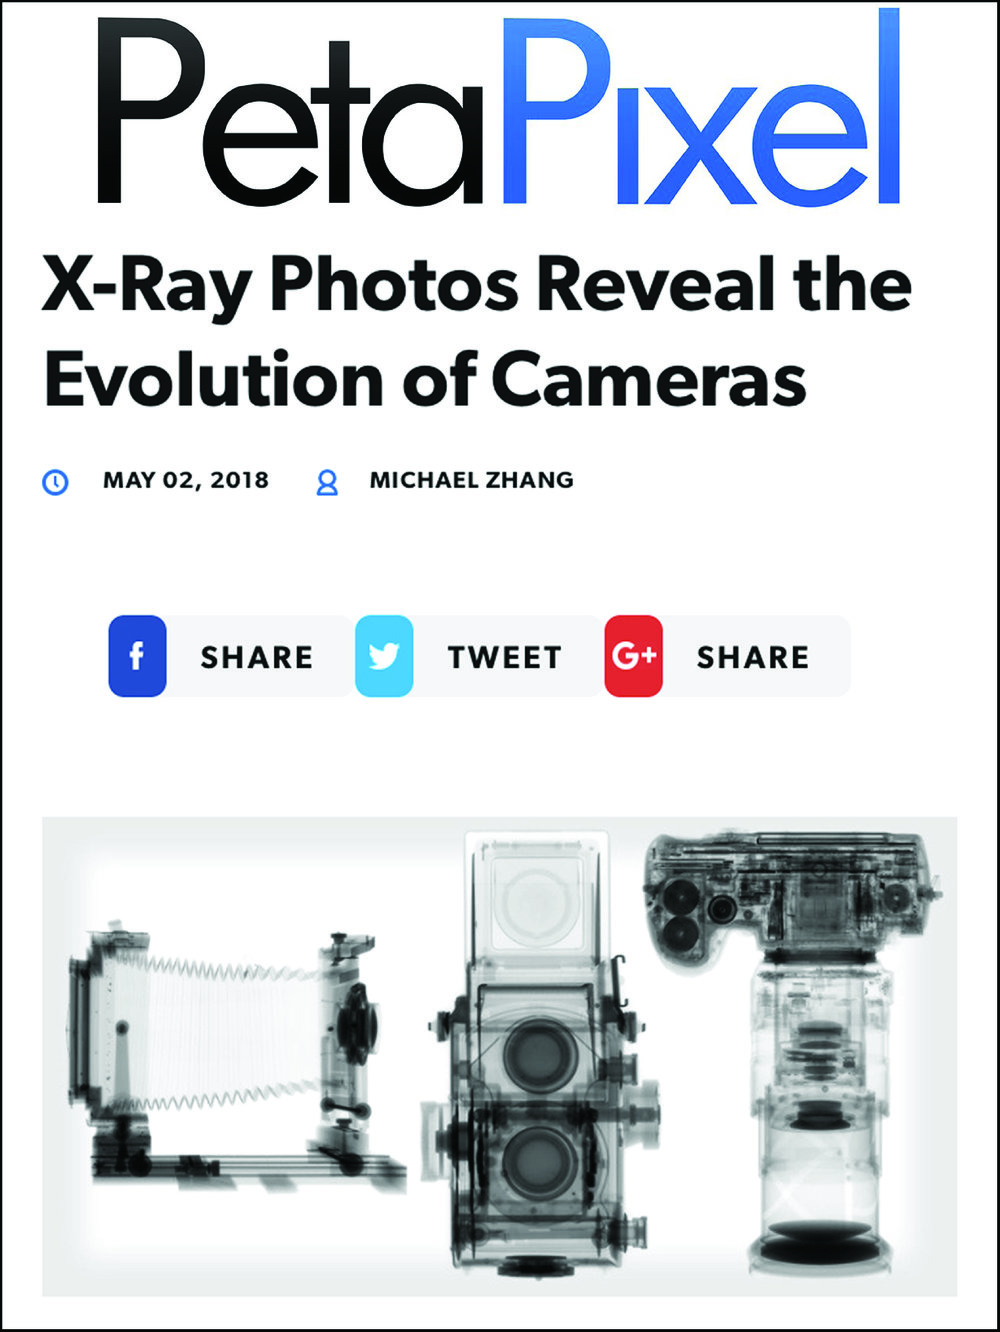 X-ray Photos Reveal the Evolution of Cameras  May 2, 2018